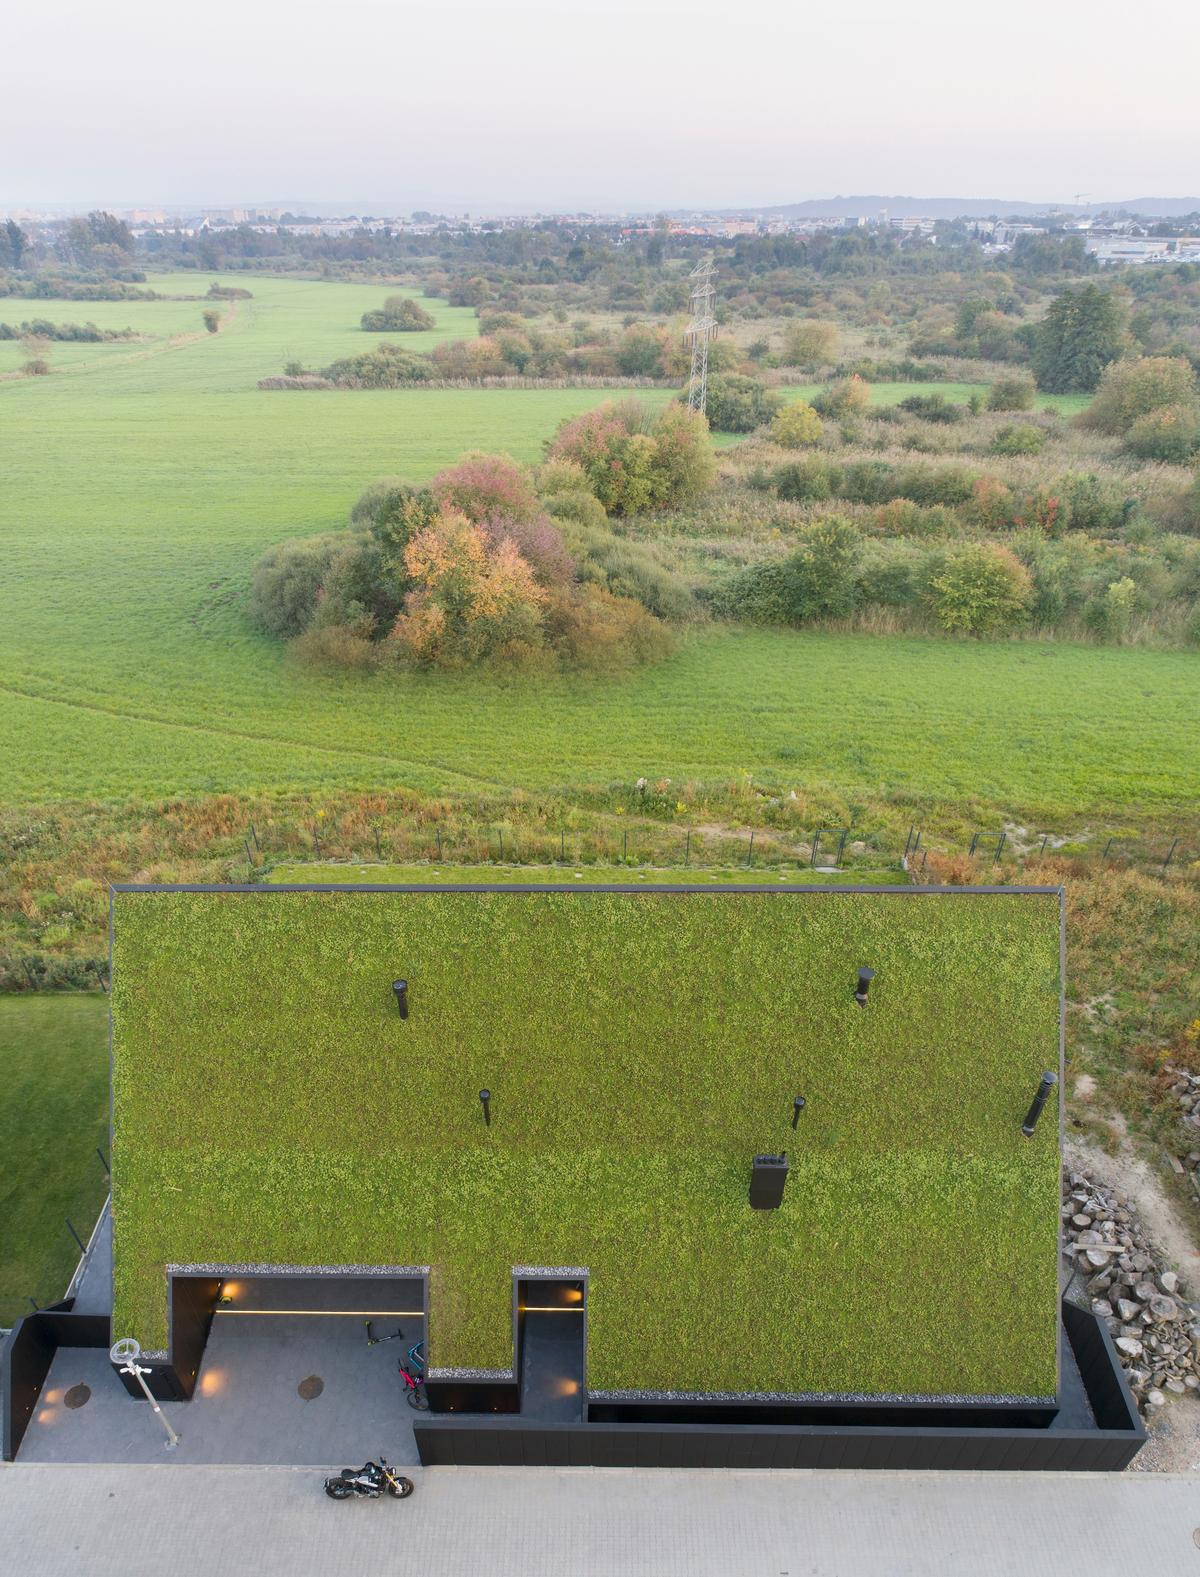 House behind the Roof has some sustainable features, including a green roof and solar panels